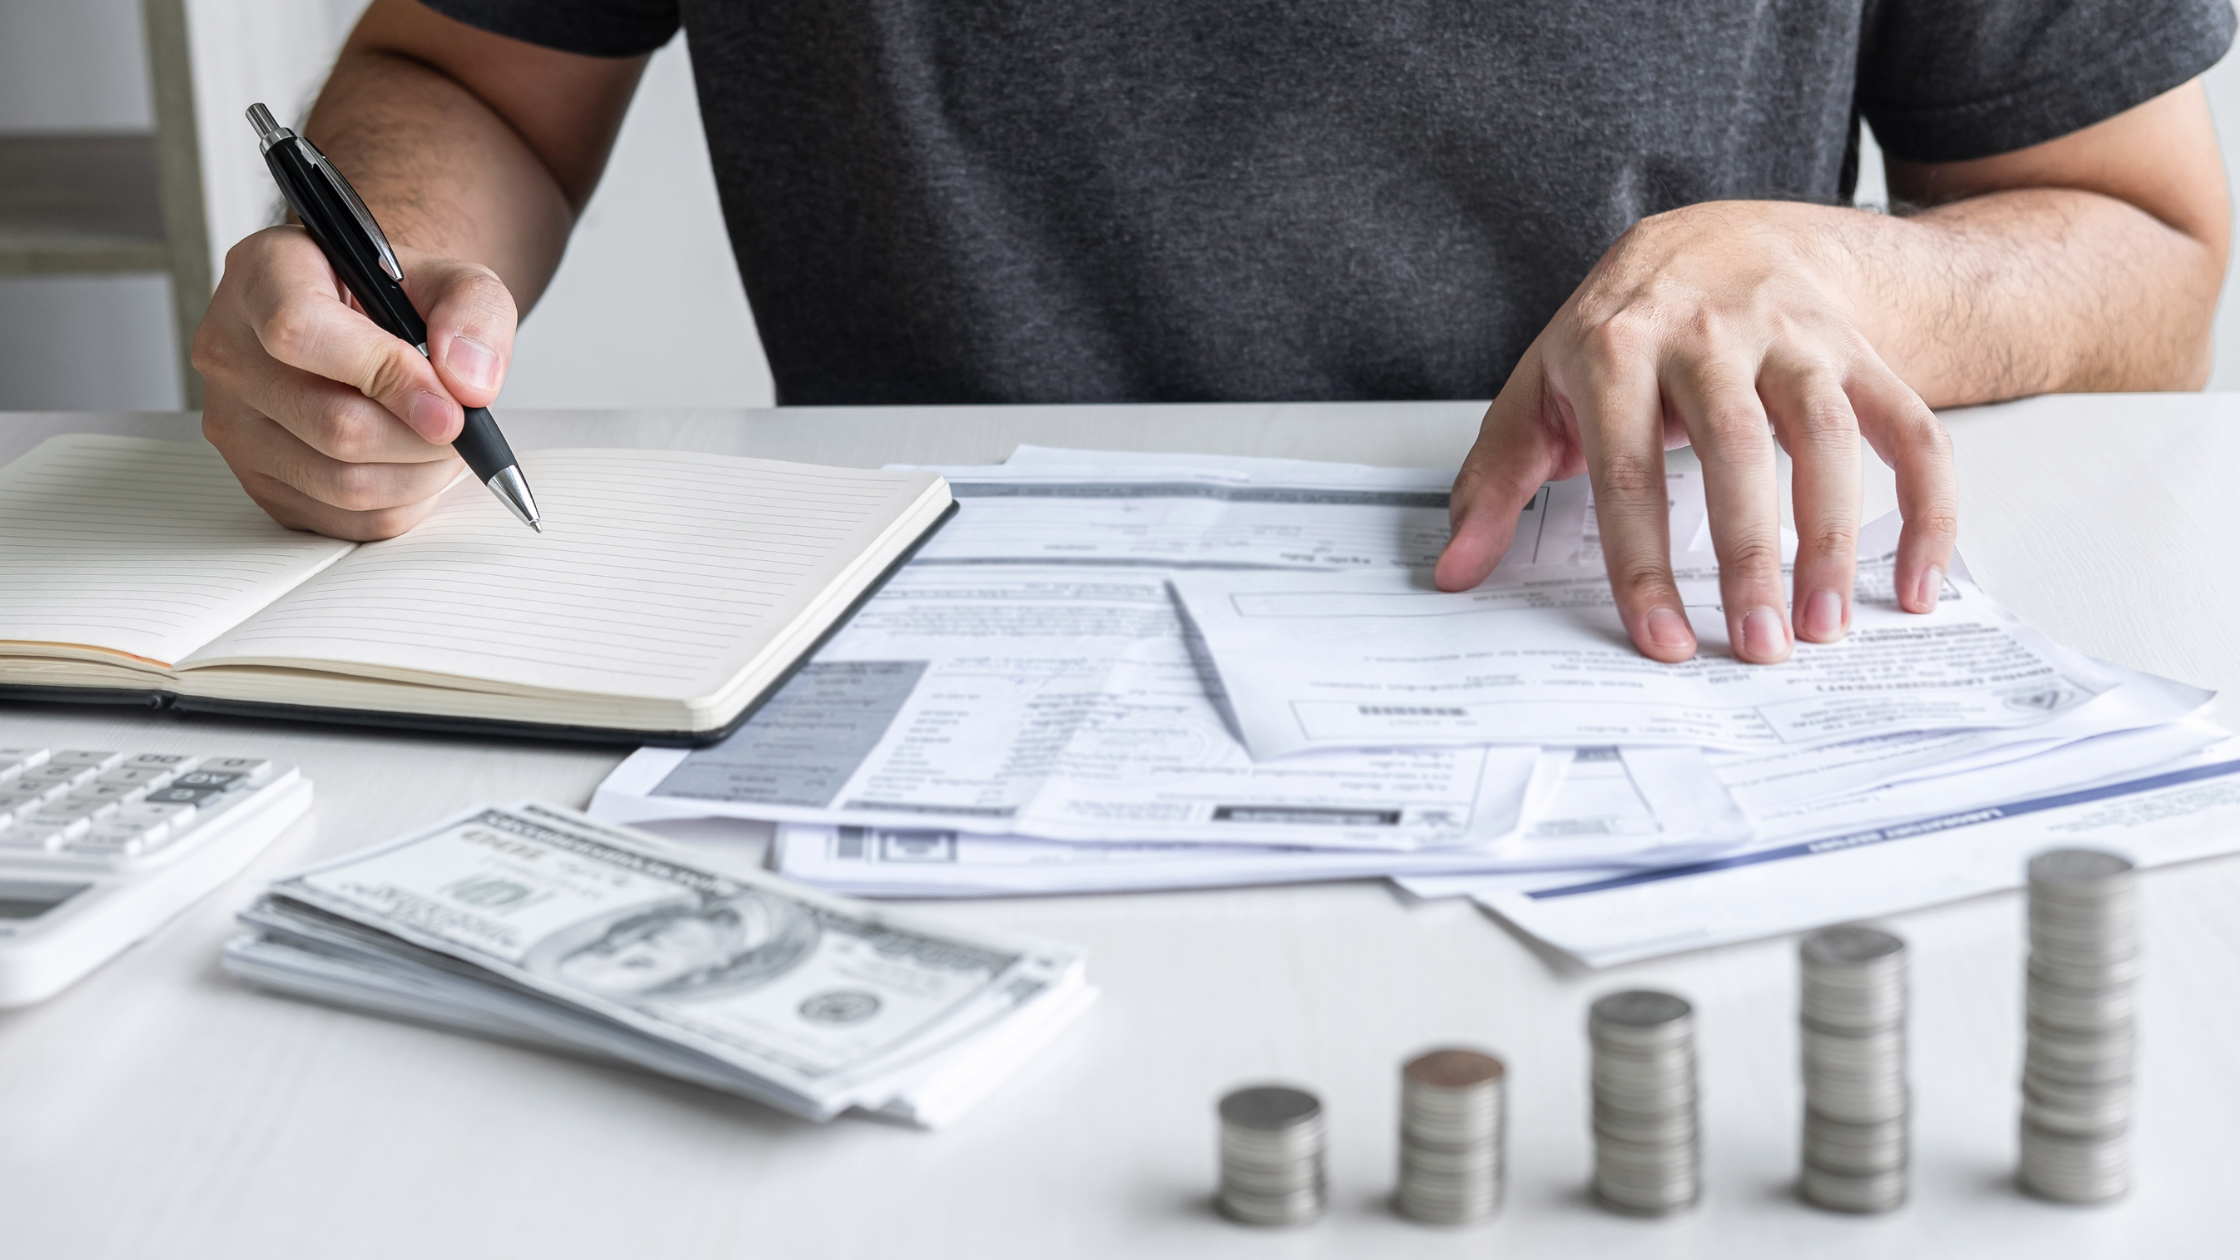 6 Easy Ways to Reduce Expenses in Your Small Business